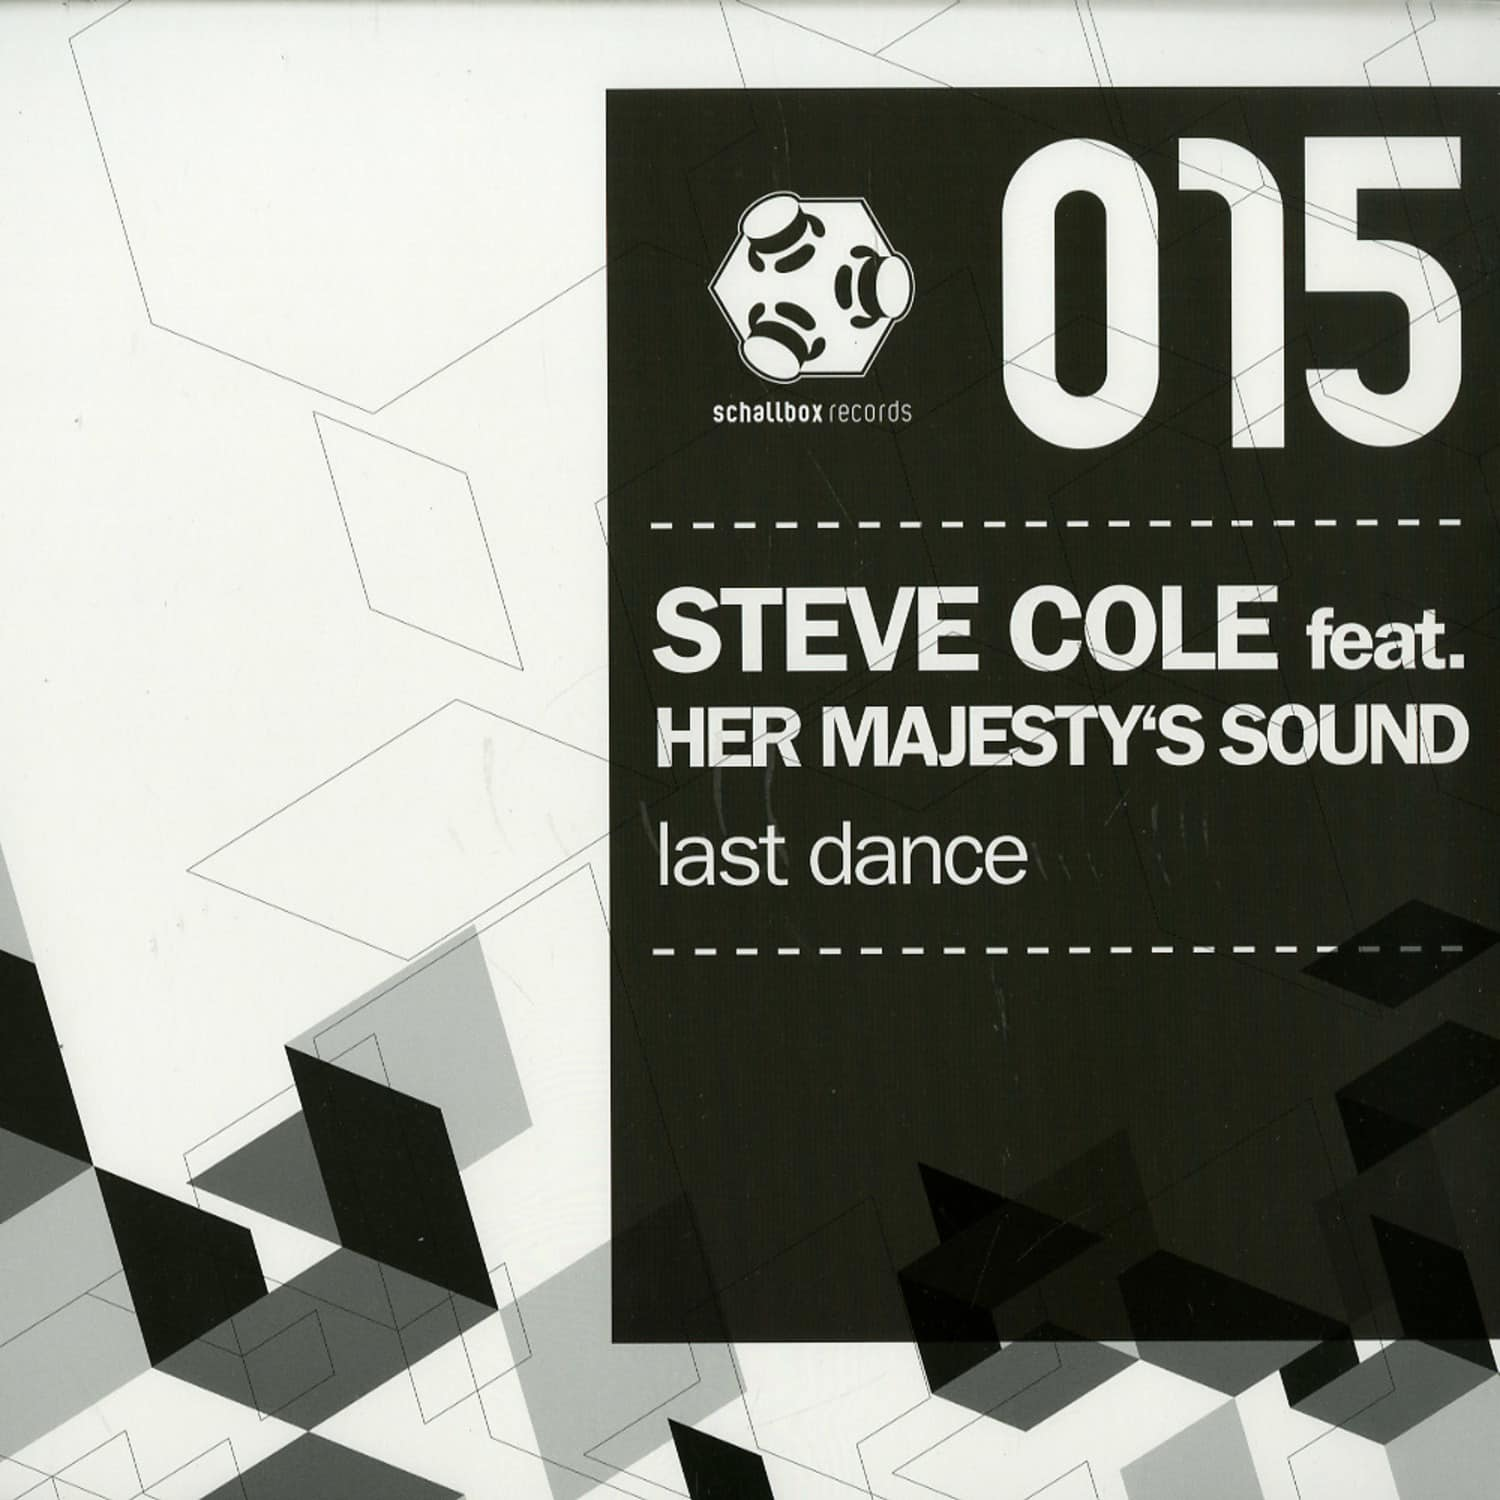 Steve Cole ft. Her Majestys Sound - LAST DANCE